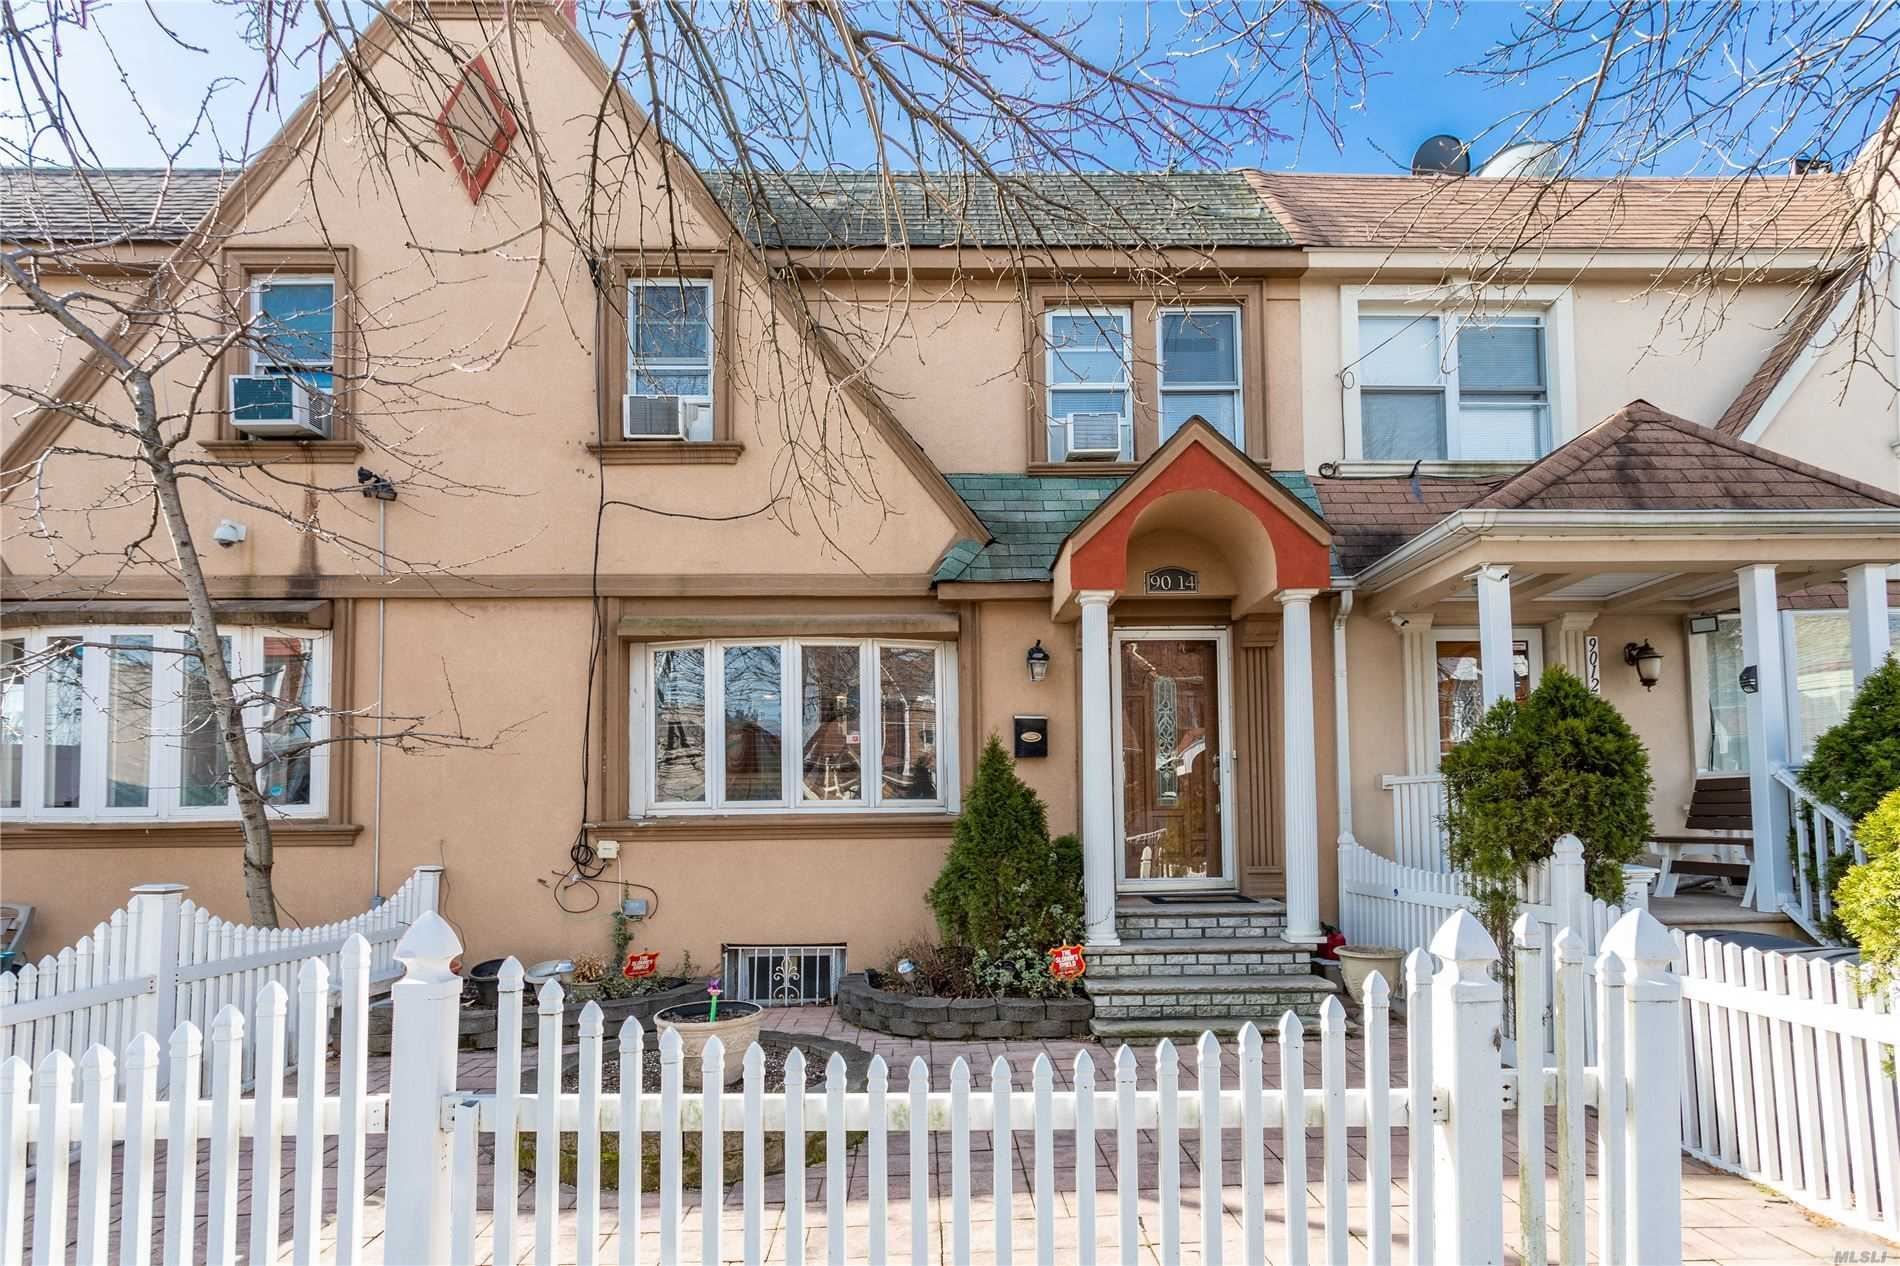 90-14 Albert Road, Ozone Park, NY 11417 - MLS#: 3206654